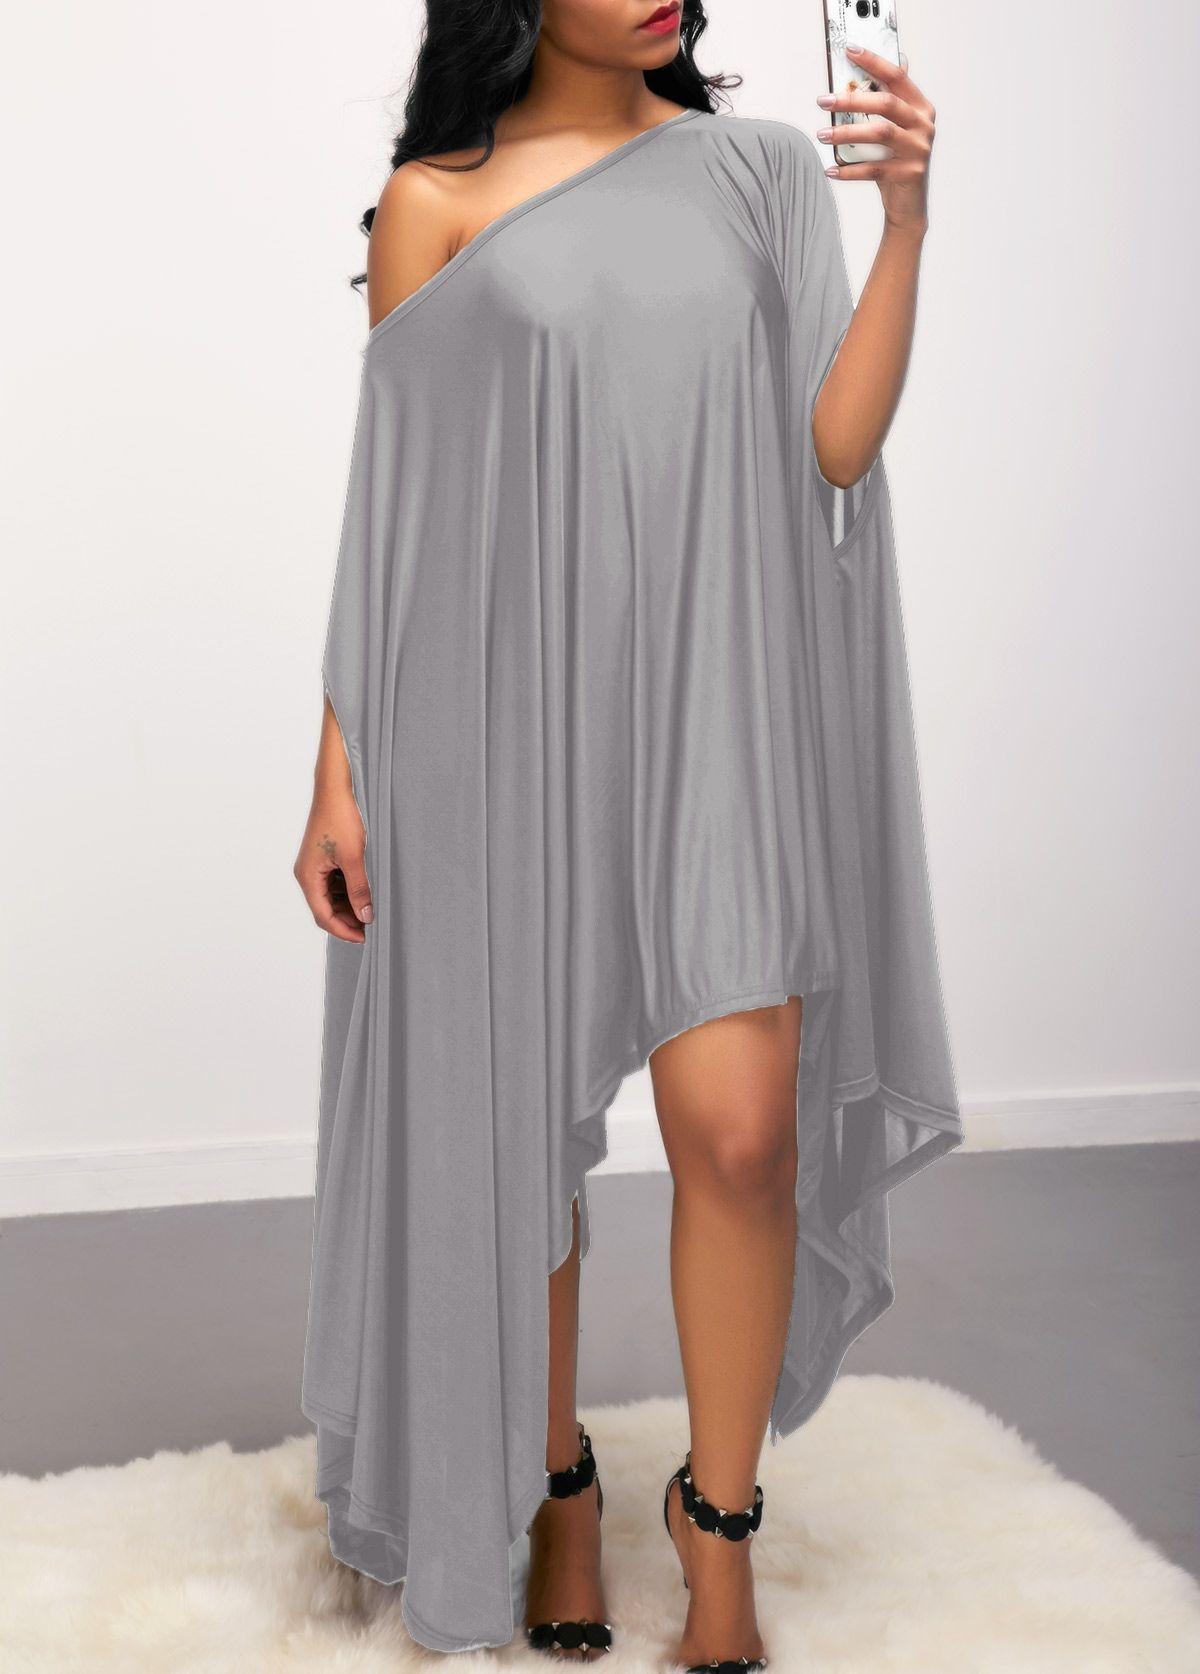 b570b0dc58 Solid Grey Skew Neck Asymmetric Hem Dress on sale only US 26.85 now ...